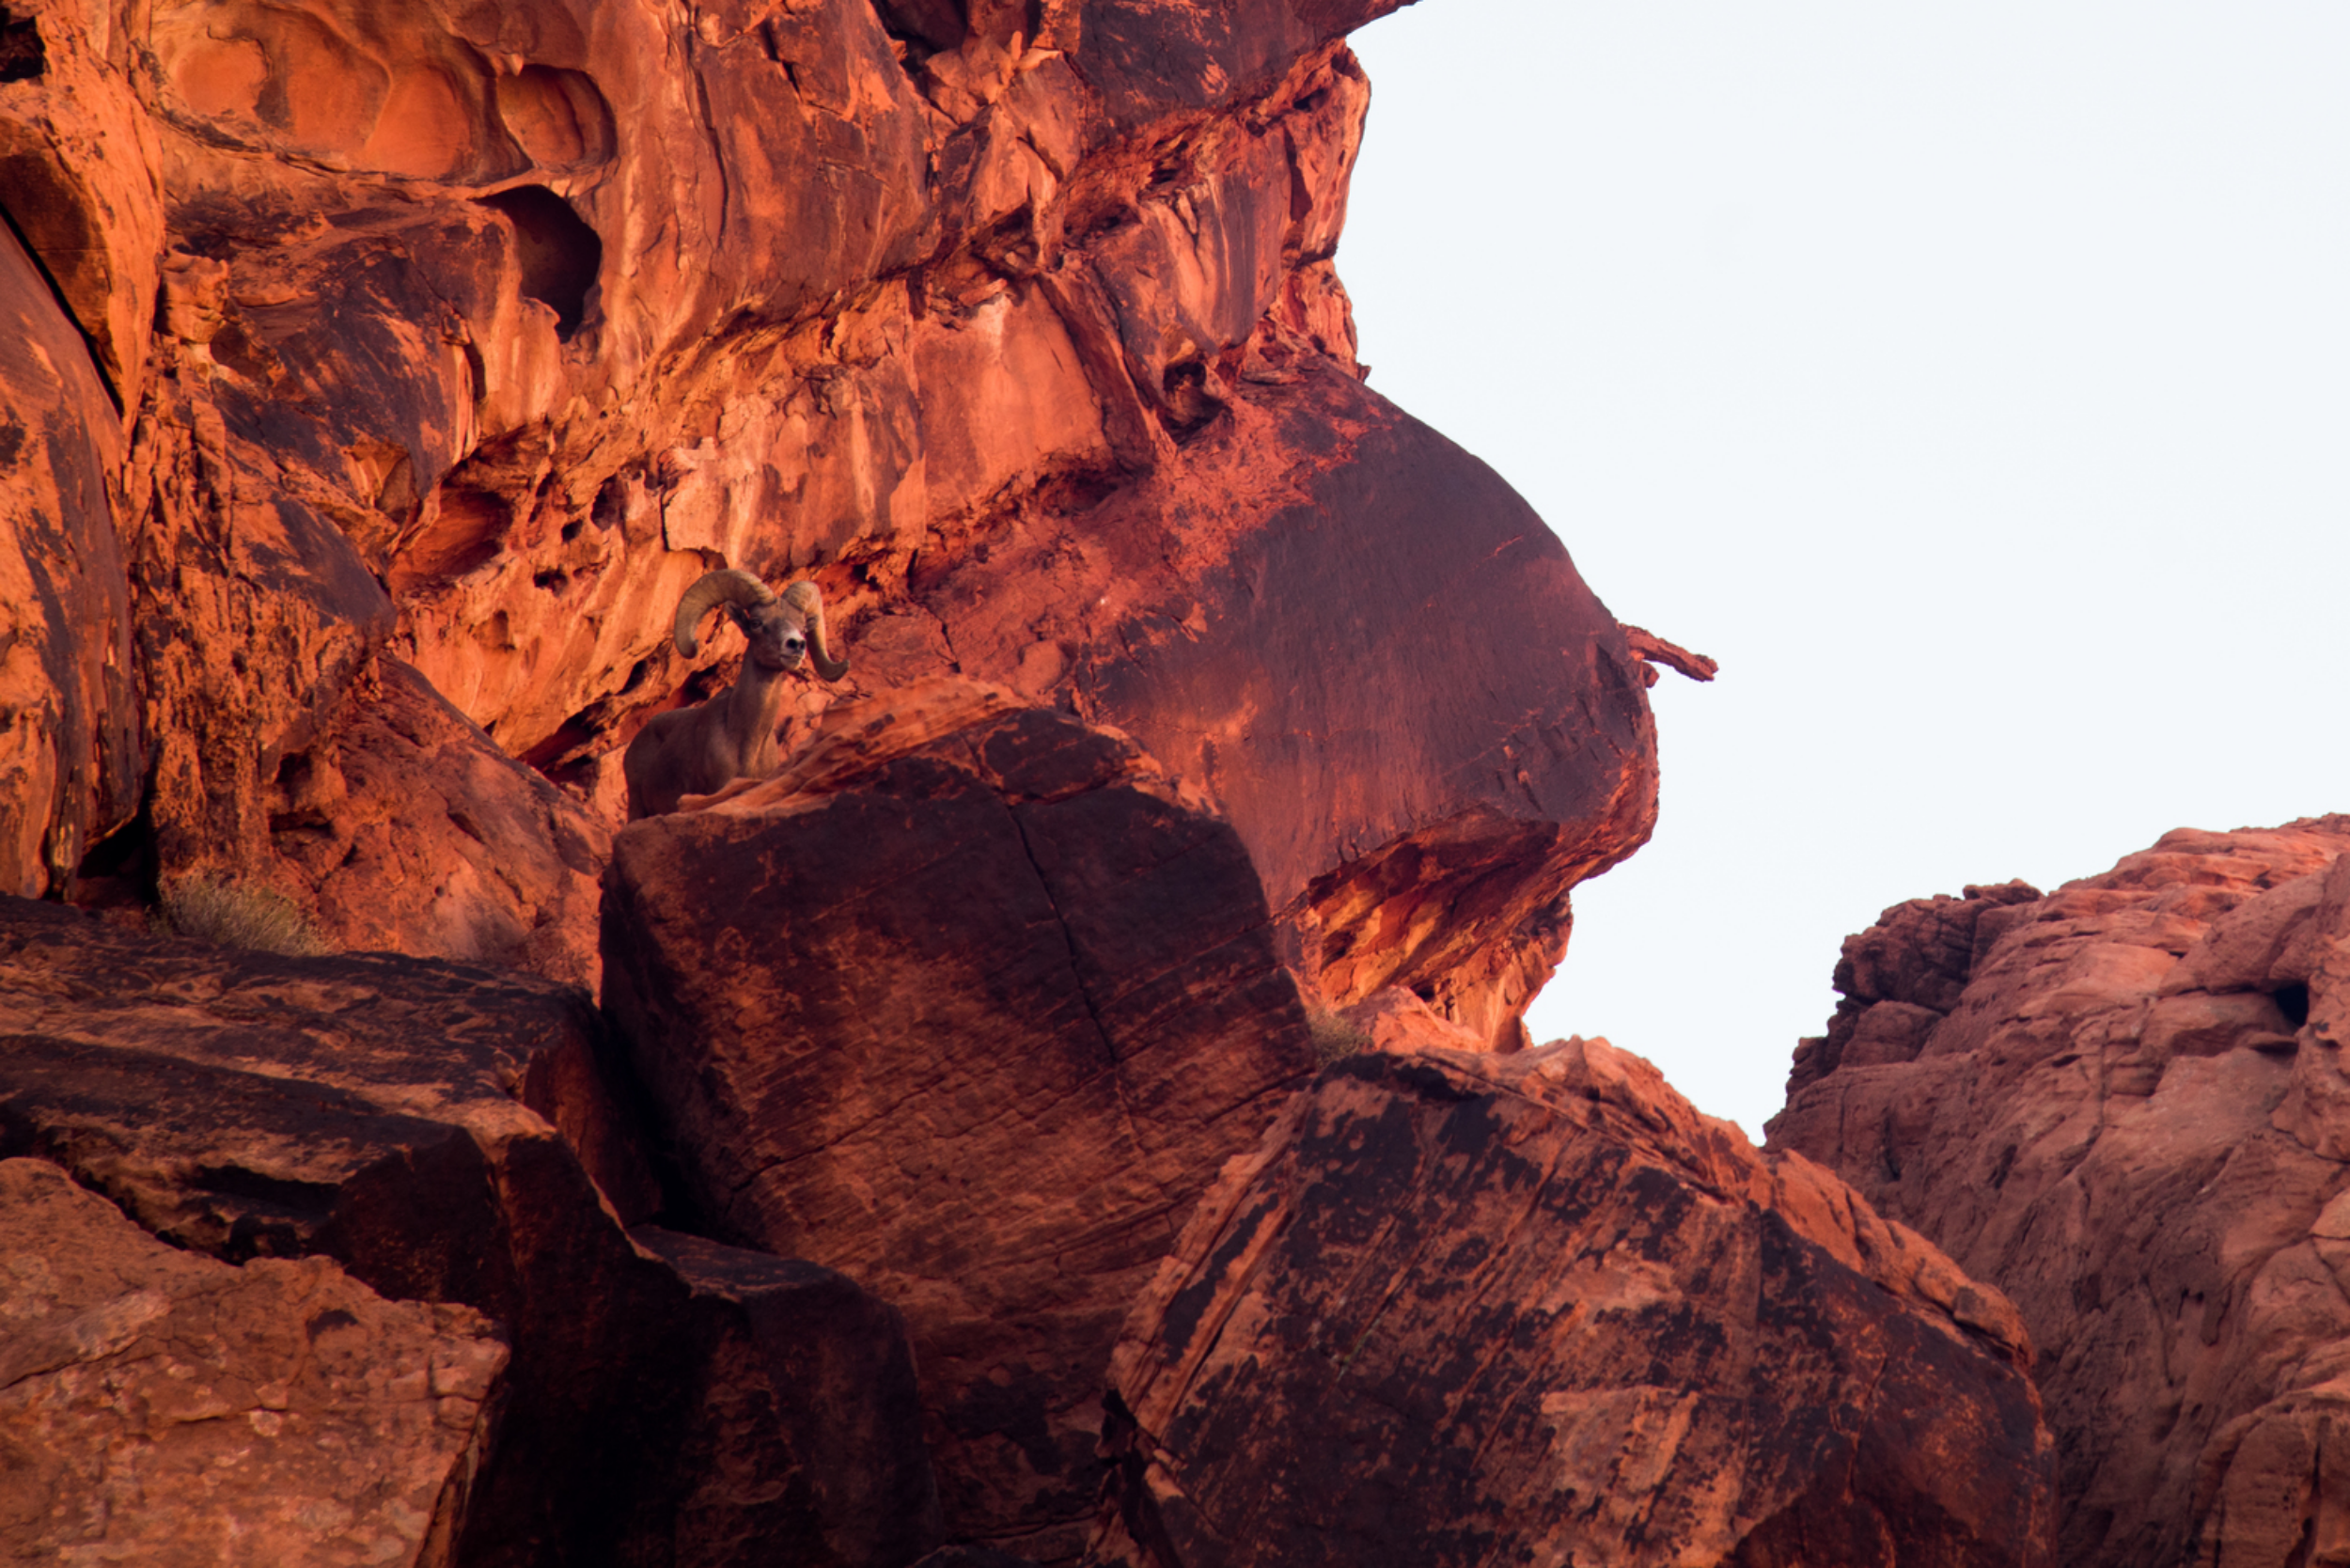 The brilliant red rocks light up in the desert sun. A majestic bighorn sheep looks out toward the valley. Photo: Trey Takahashi